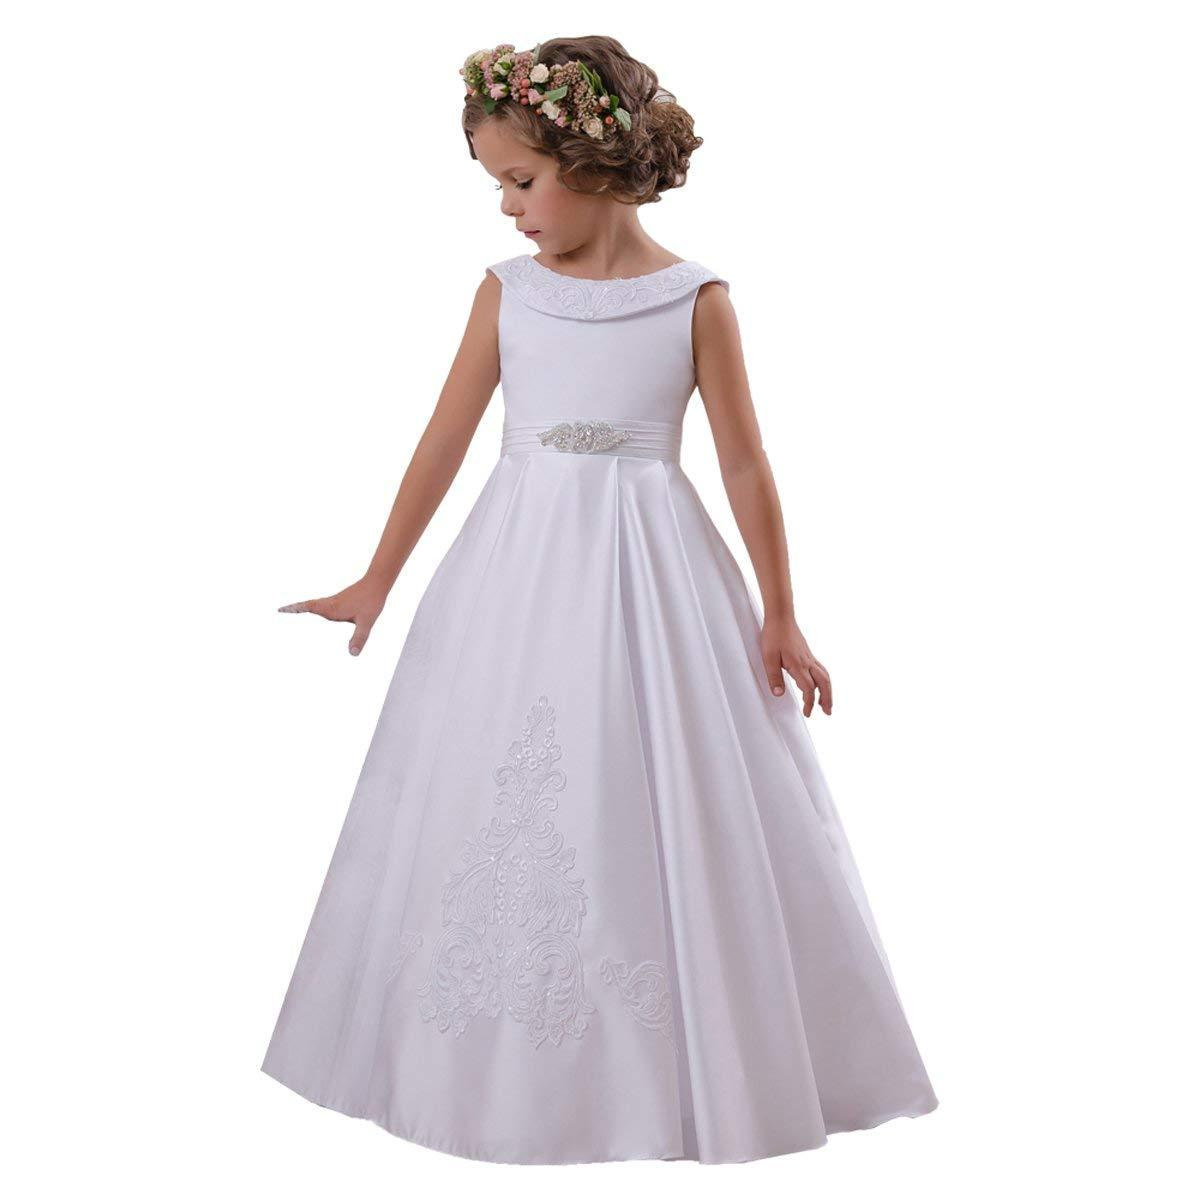 507dfae6c63 Elegant O Neck Flower Girl Dress Kids Dress Sleeveless A Line Stain Party  Wedding Dresses For Girls 2 14 Year Old Beautiful Flower Girl Dress  Bridesmaid ...